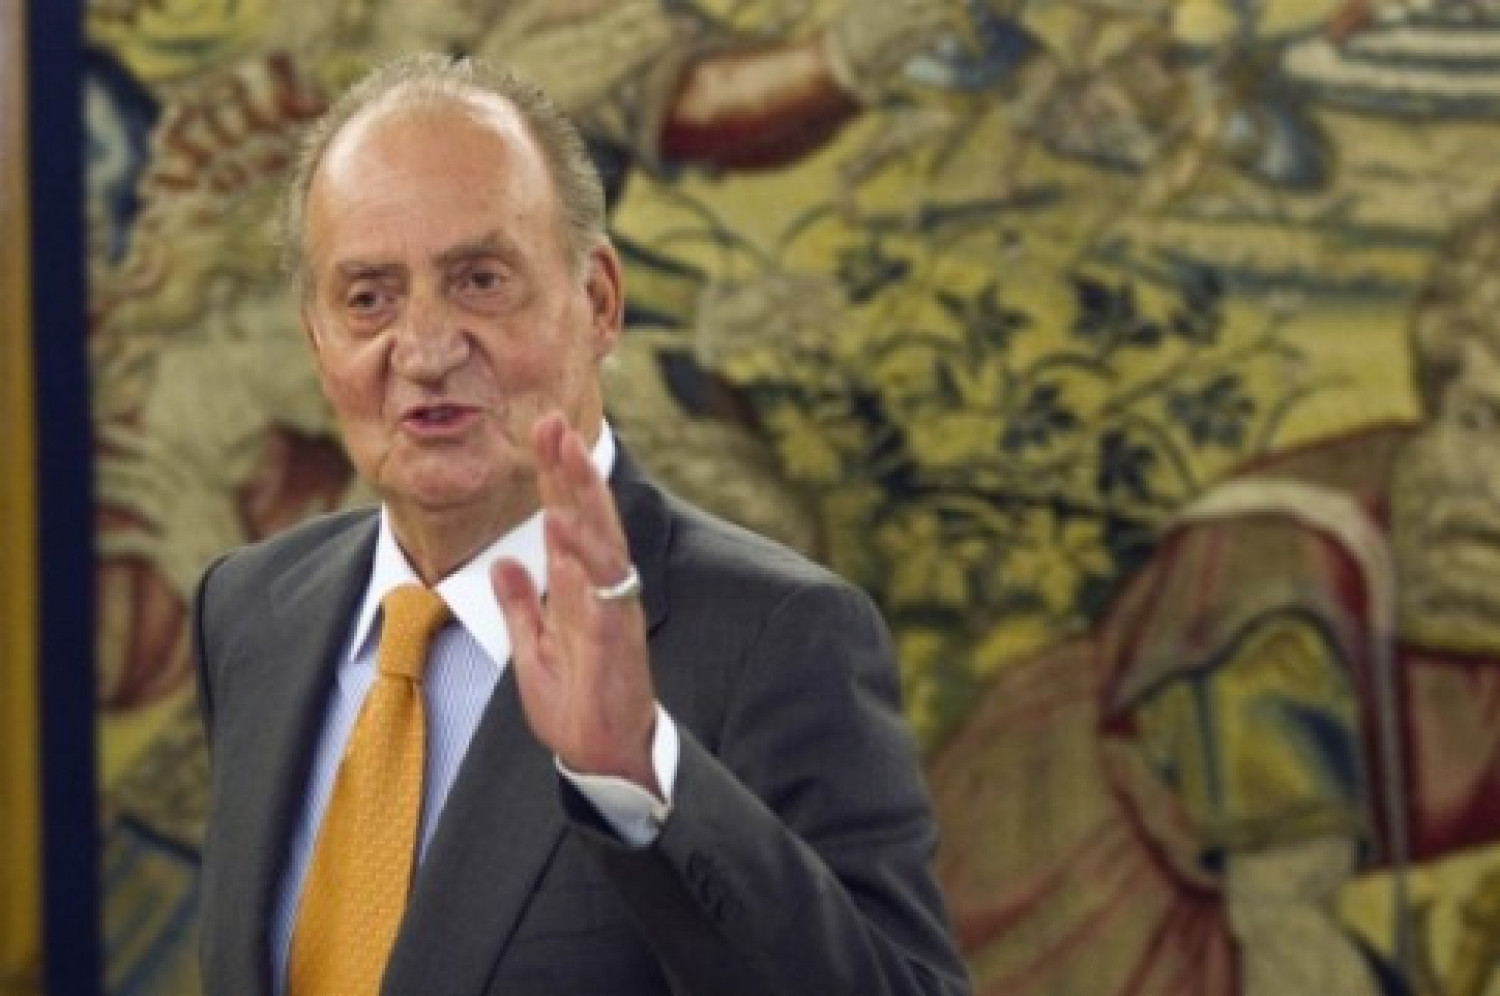 Former Spanish king Juan Carlos I at the Zarzuela palace (REUTERS)